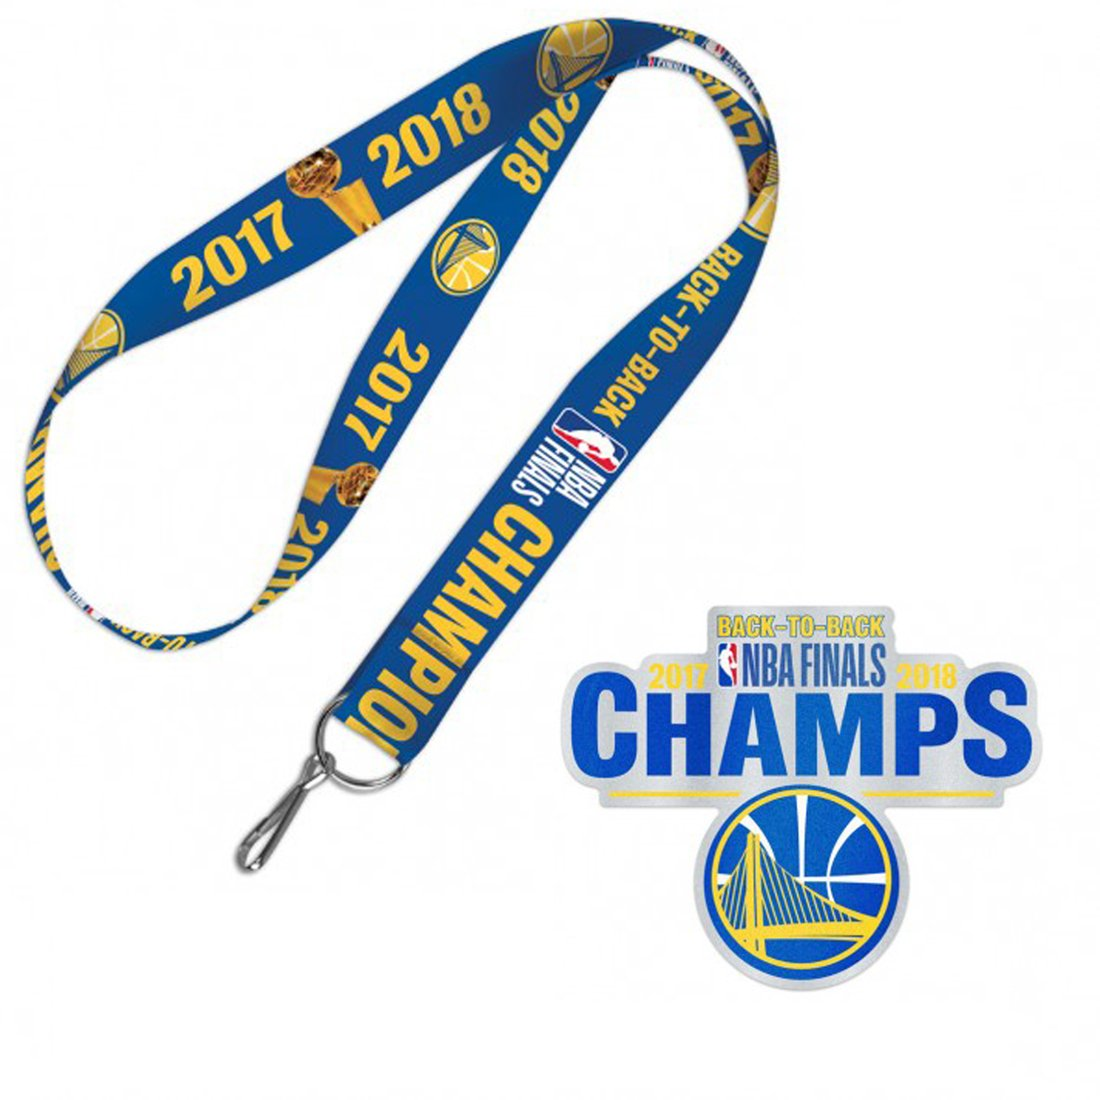 WinCraft Bundle 2 Items: Golden State Warriors 2017-2018 Back to Back NBA Finals Champions 1 Lanyard and 1 Auto Badge Decal